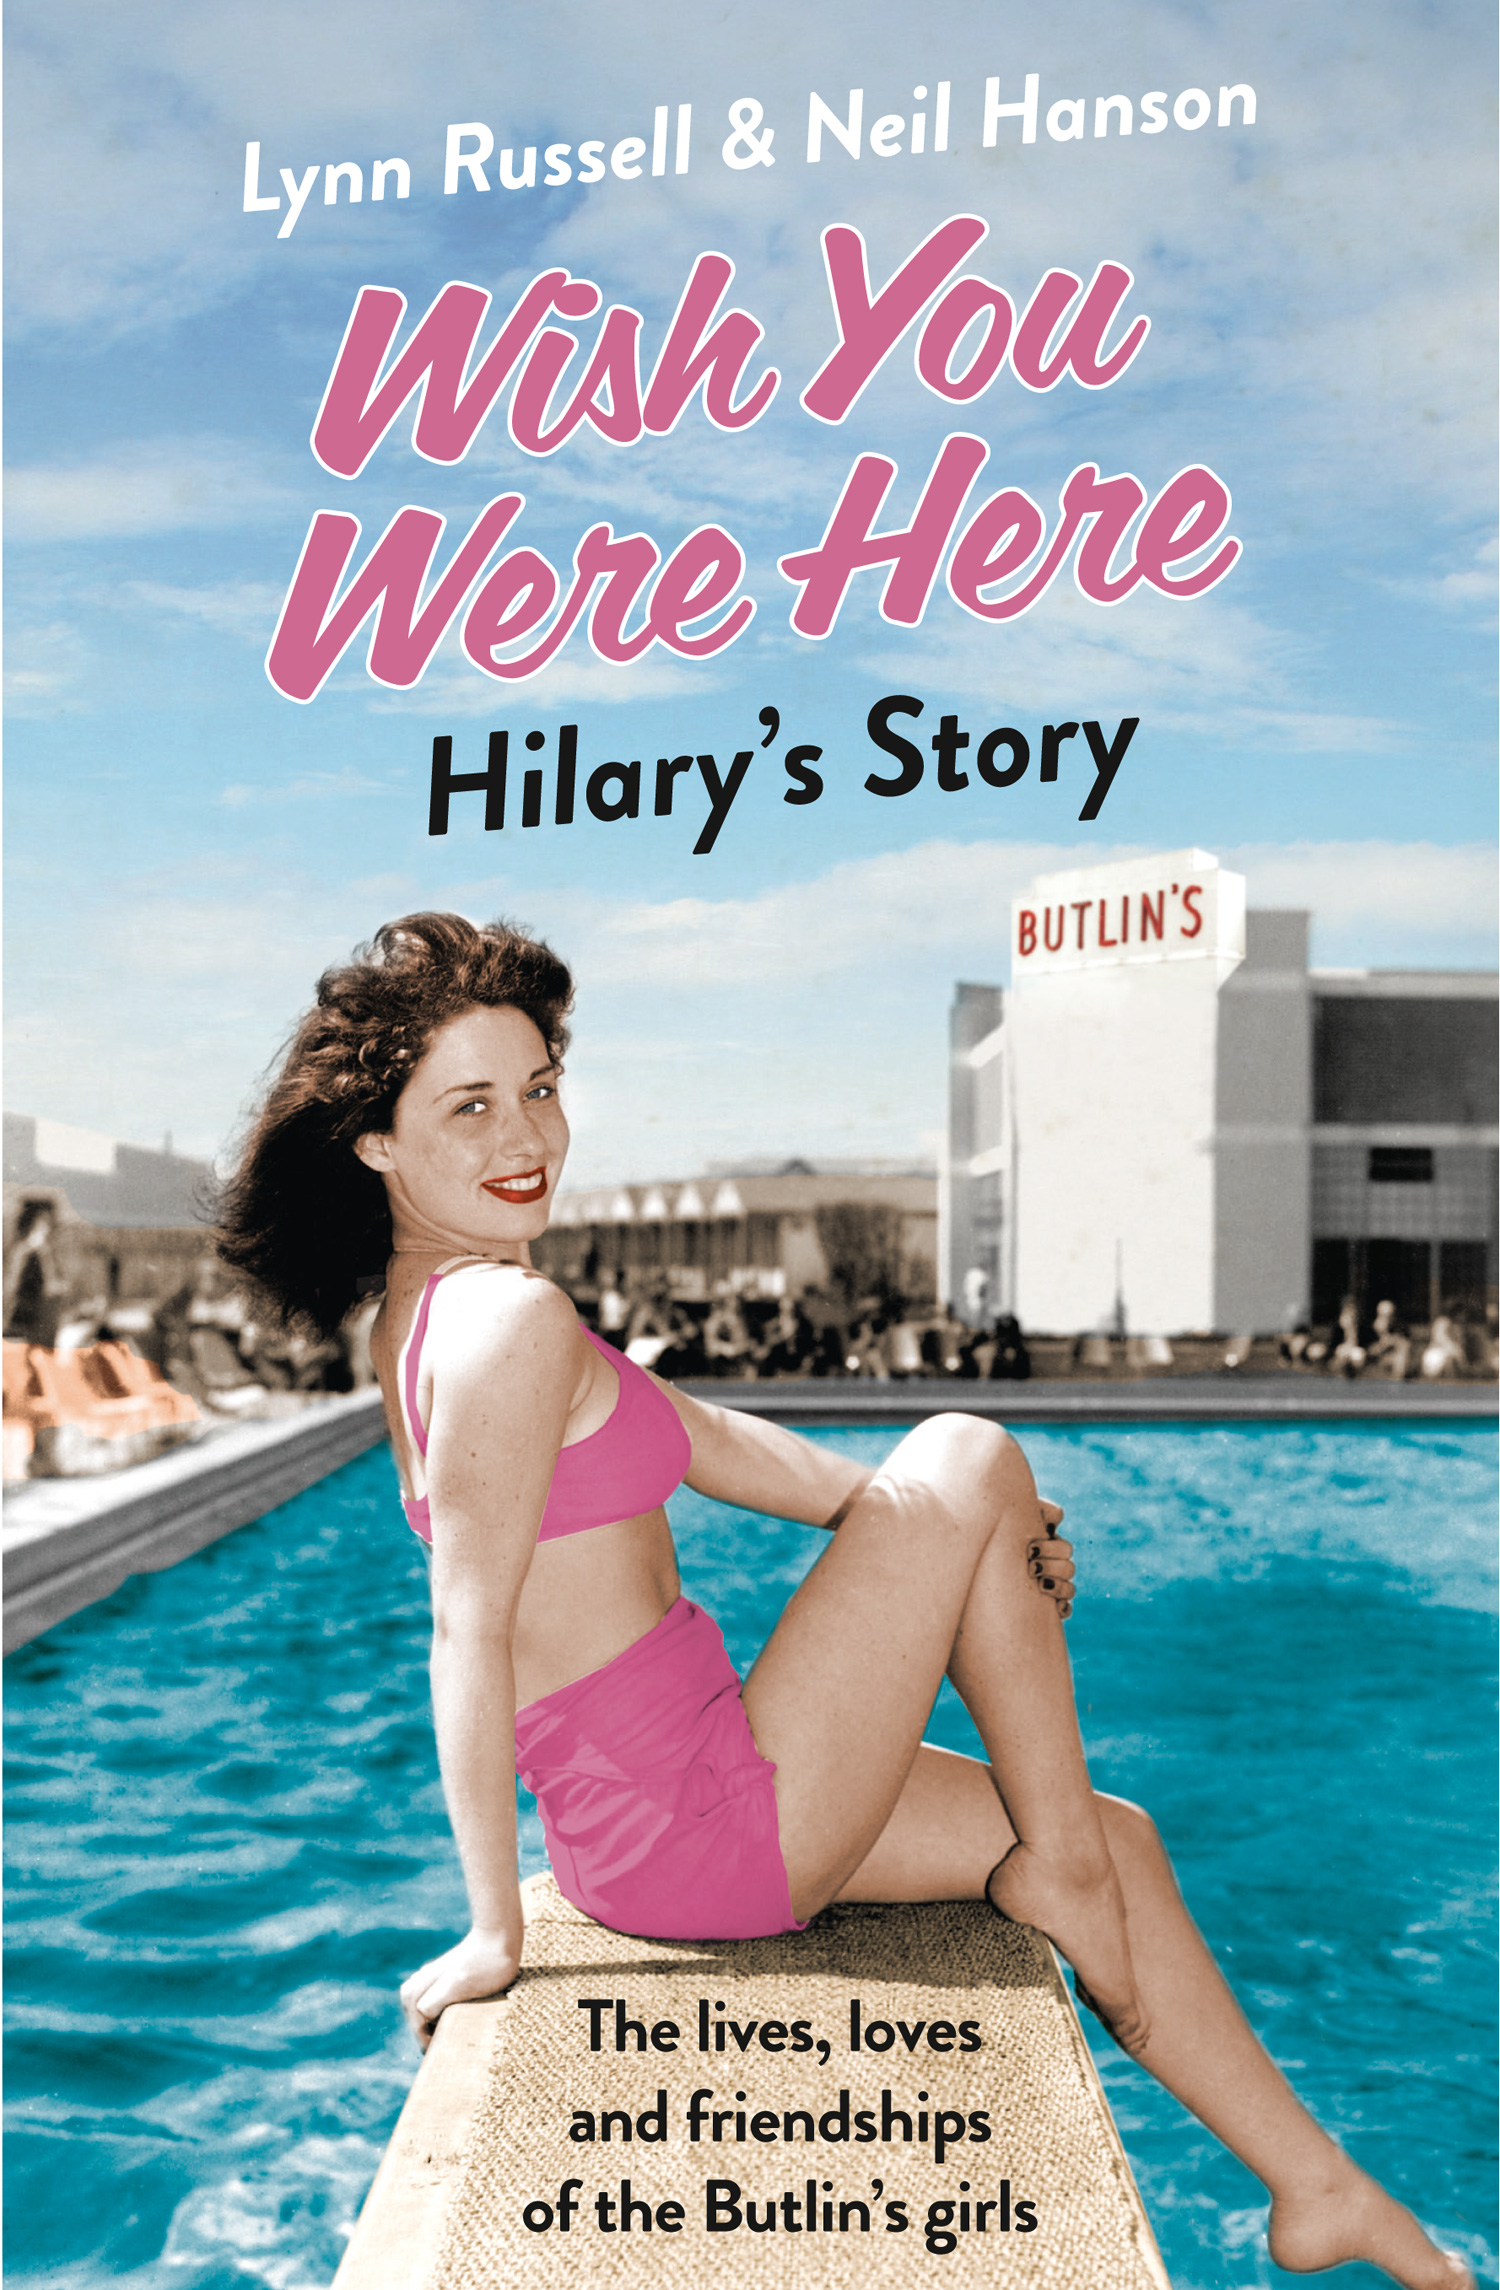 Hilary?s Story (Individual stories from WISH YOU WERE HERE!,  Book 1)